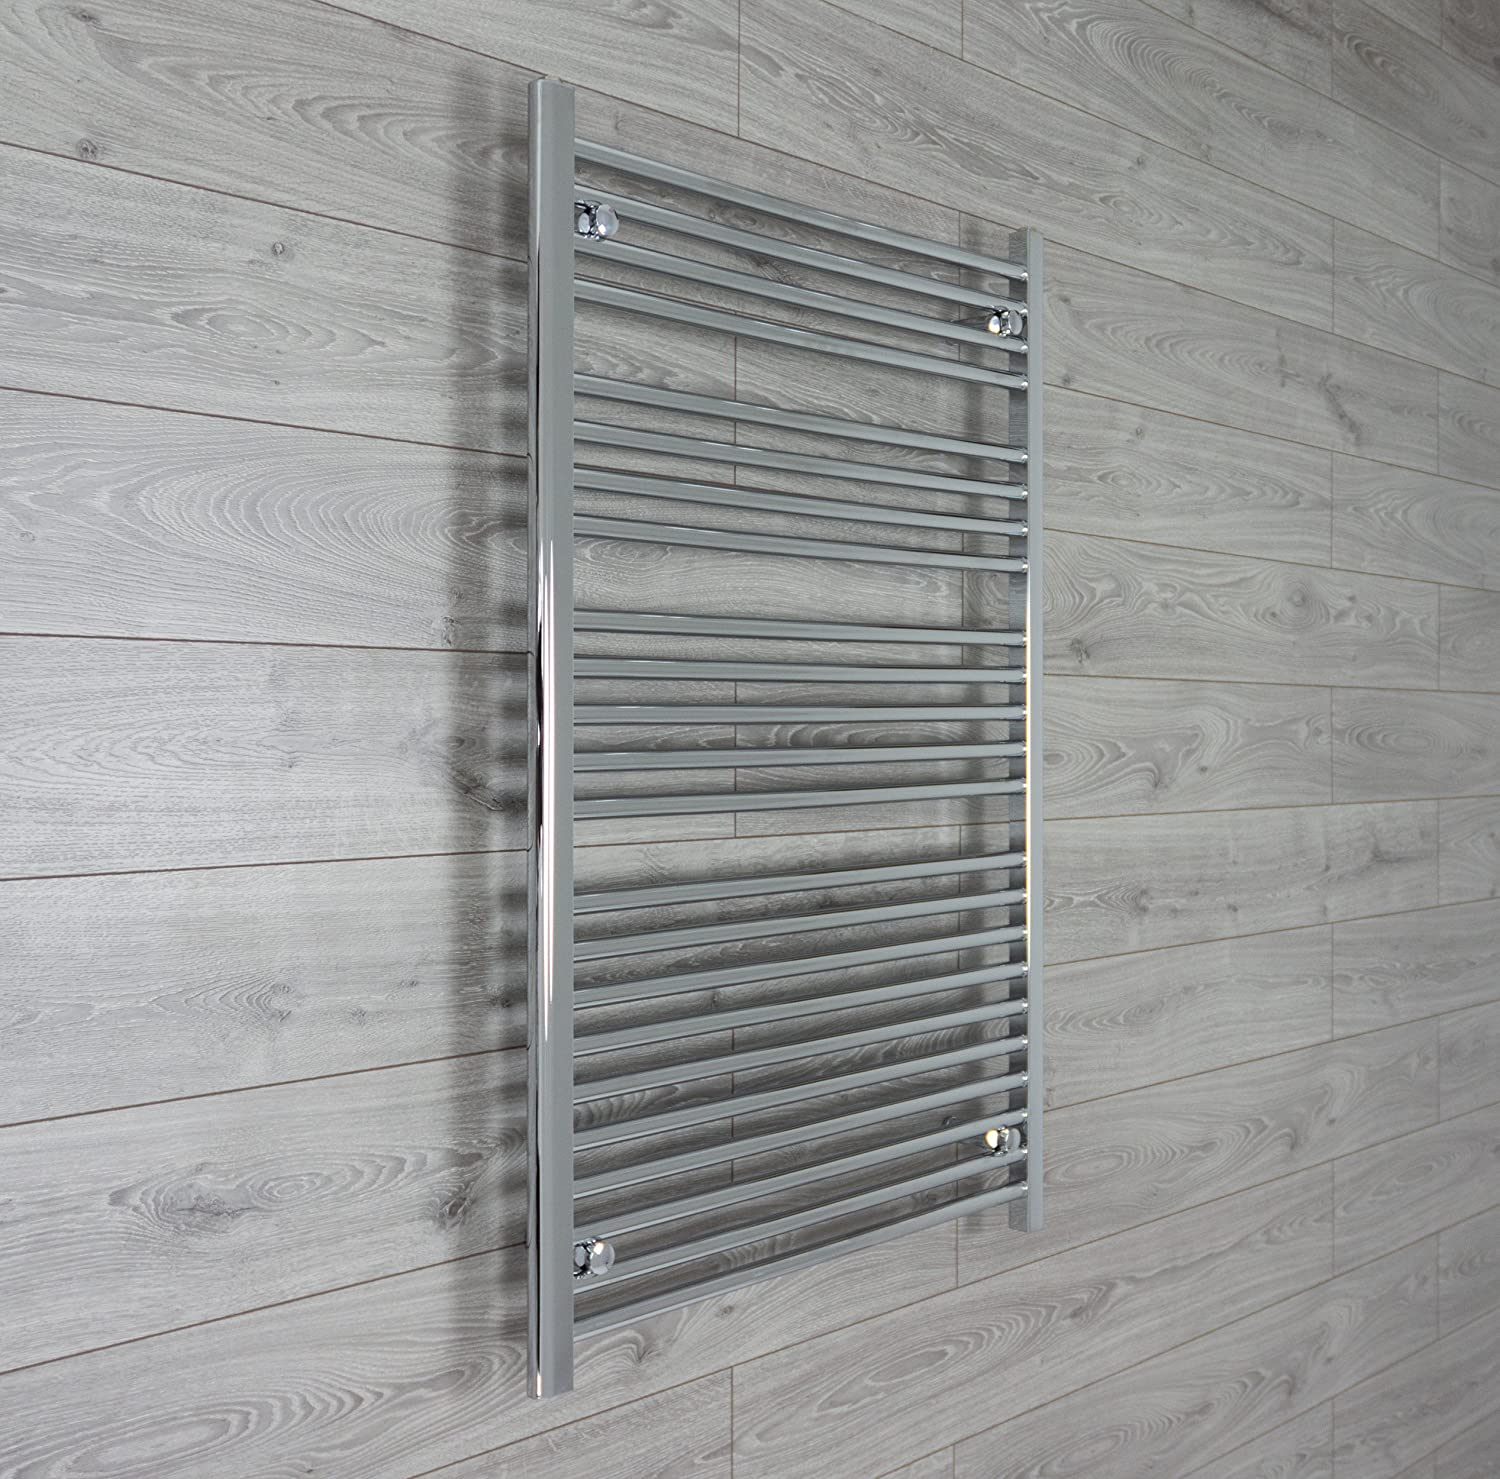 800mm wide 1200mm high Chrome Heated Towel Rails Bathroom